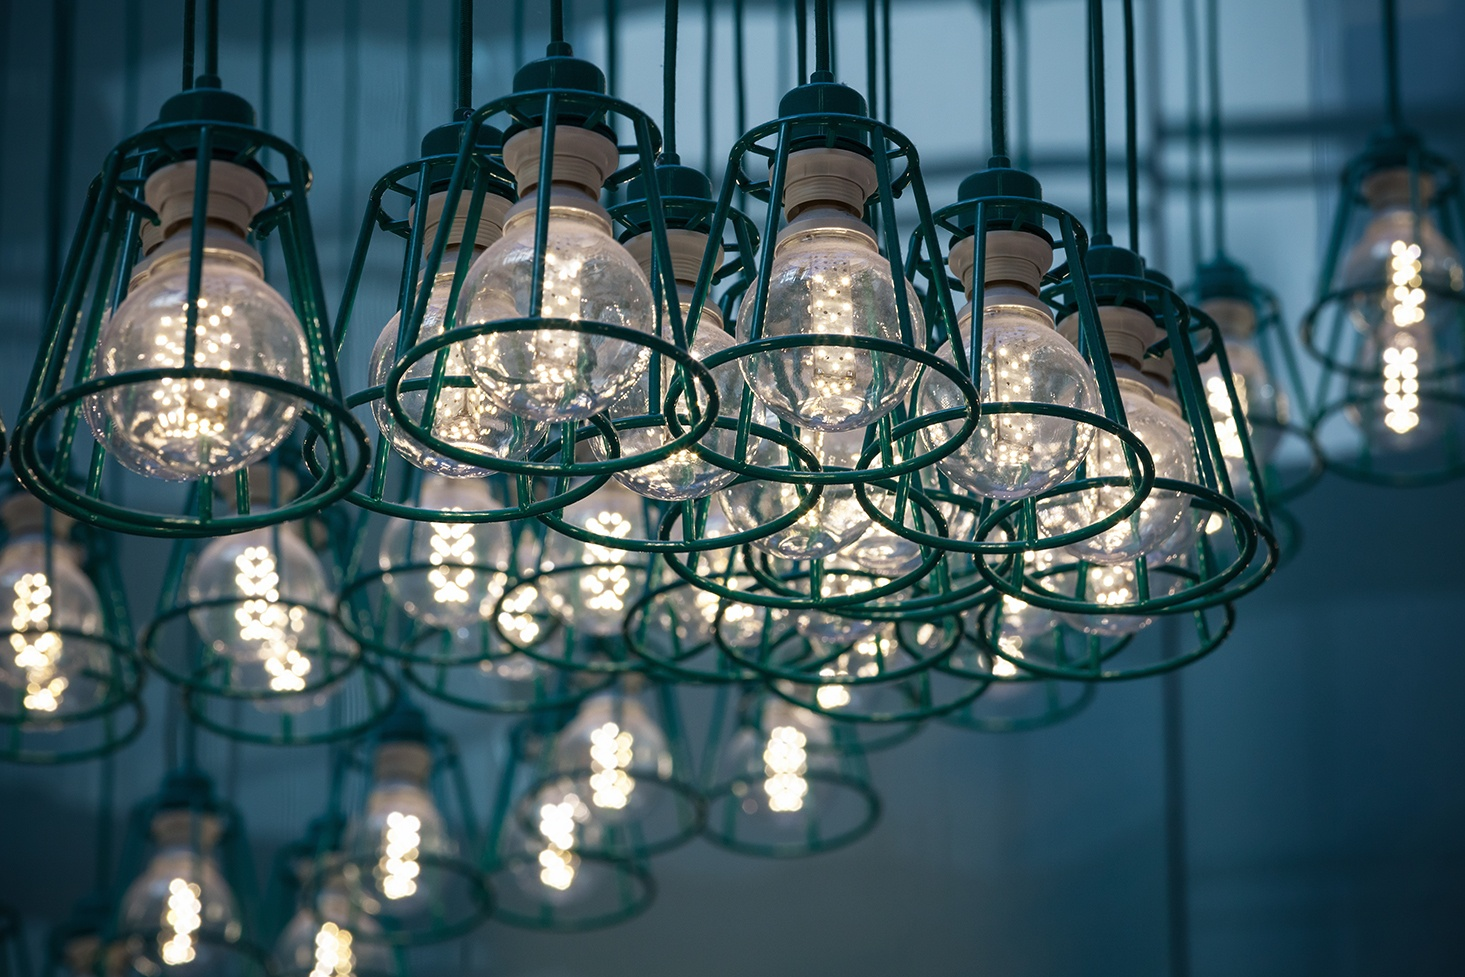 Plug-and-play LED bulb vs. LED fixture: Pros and cons to consider for your next project